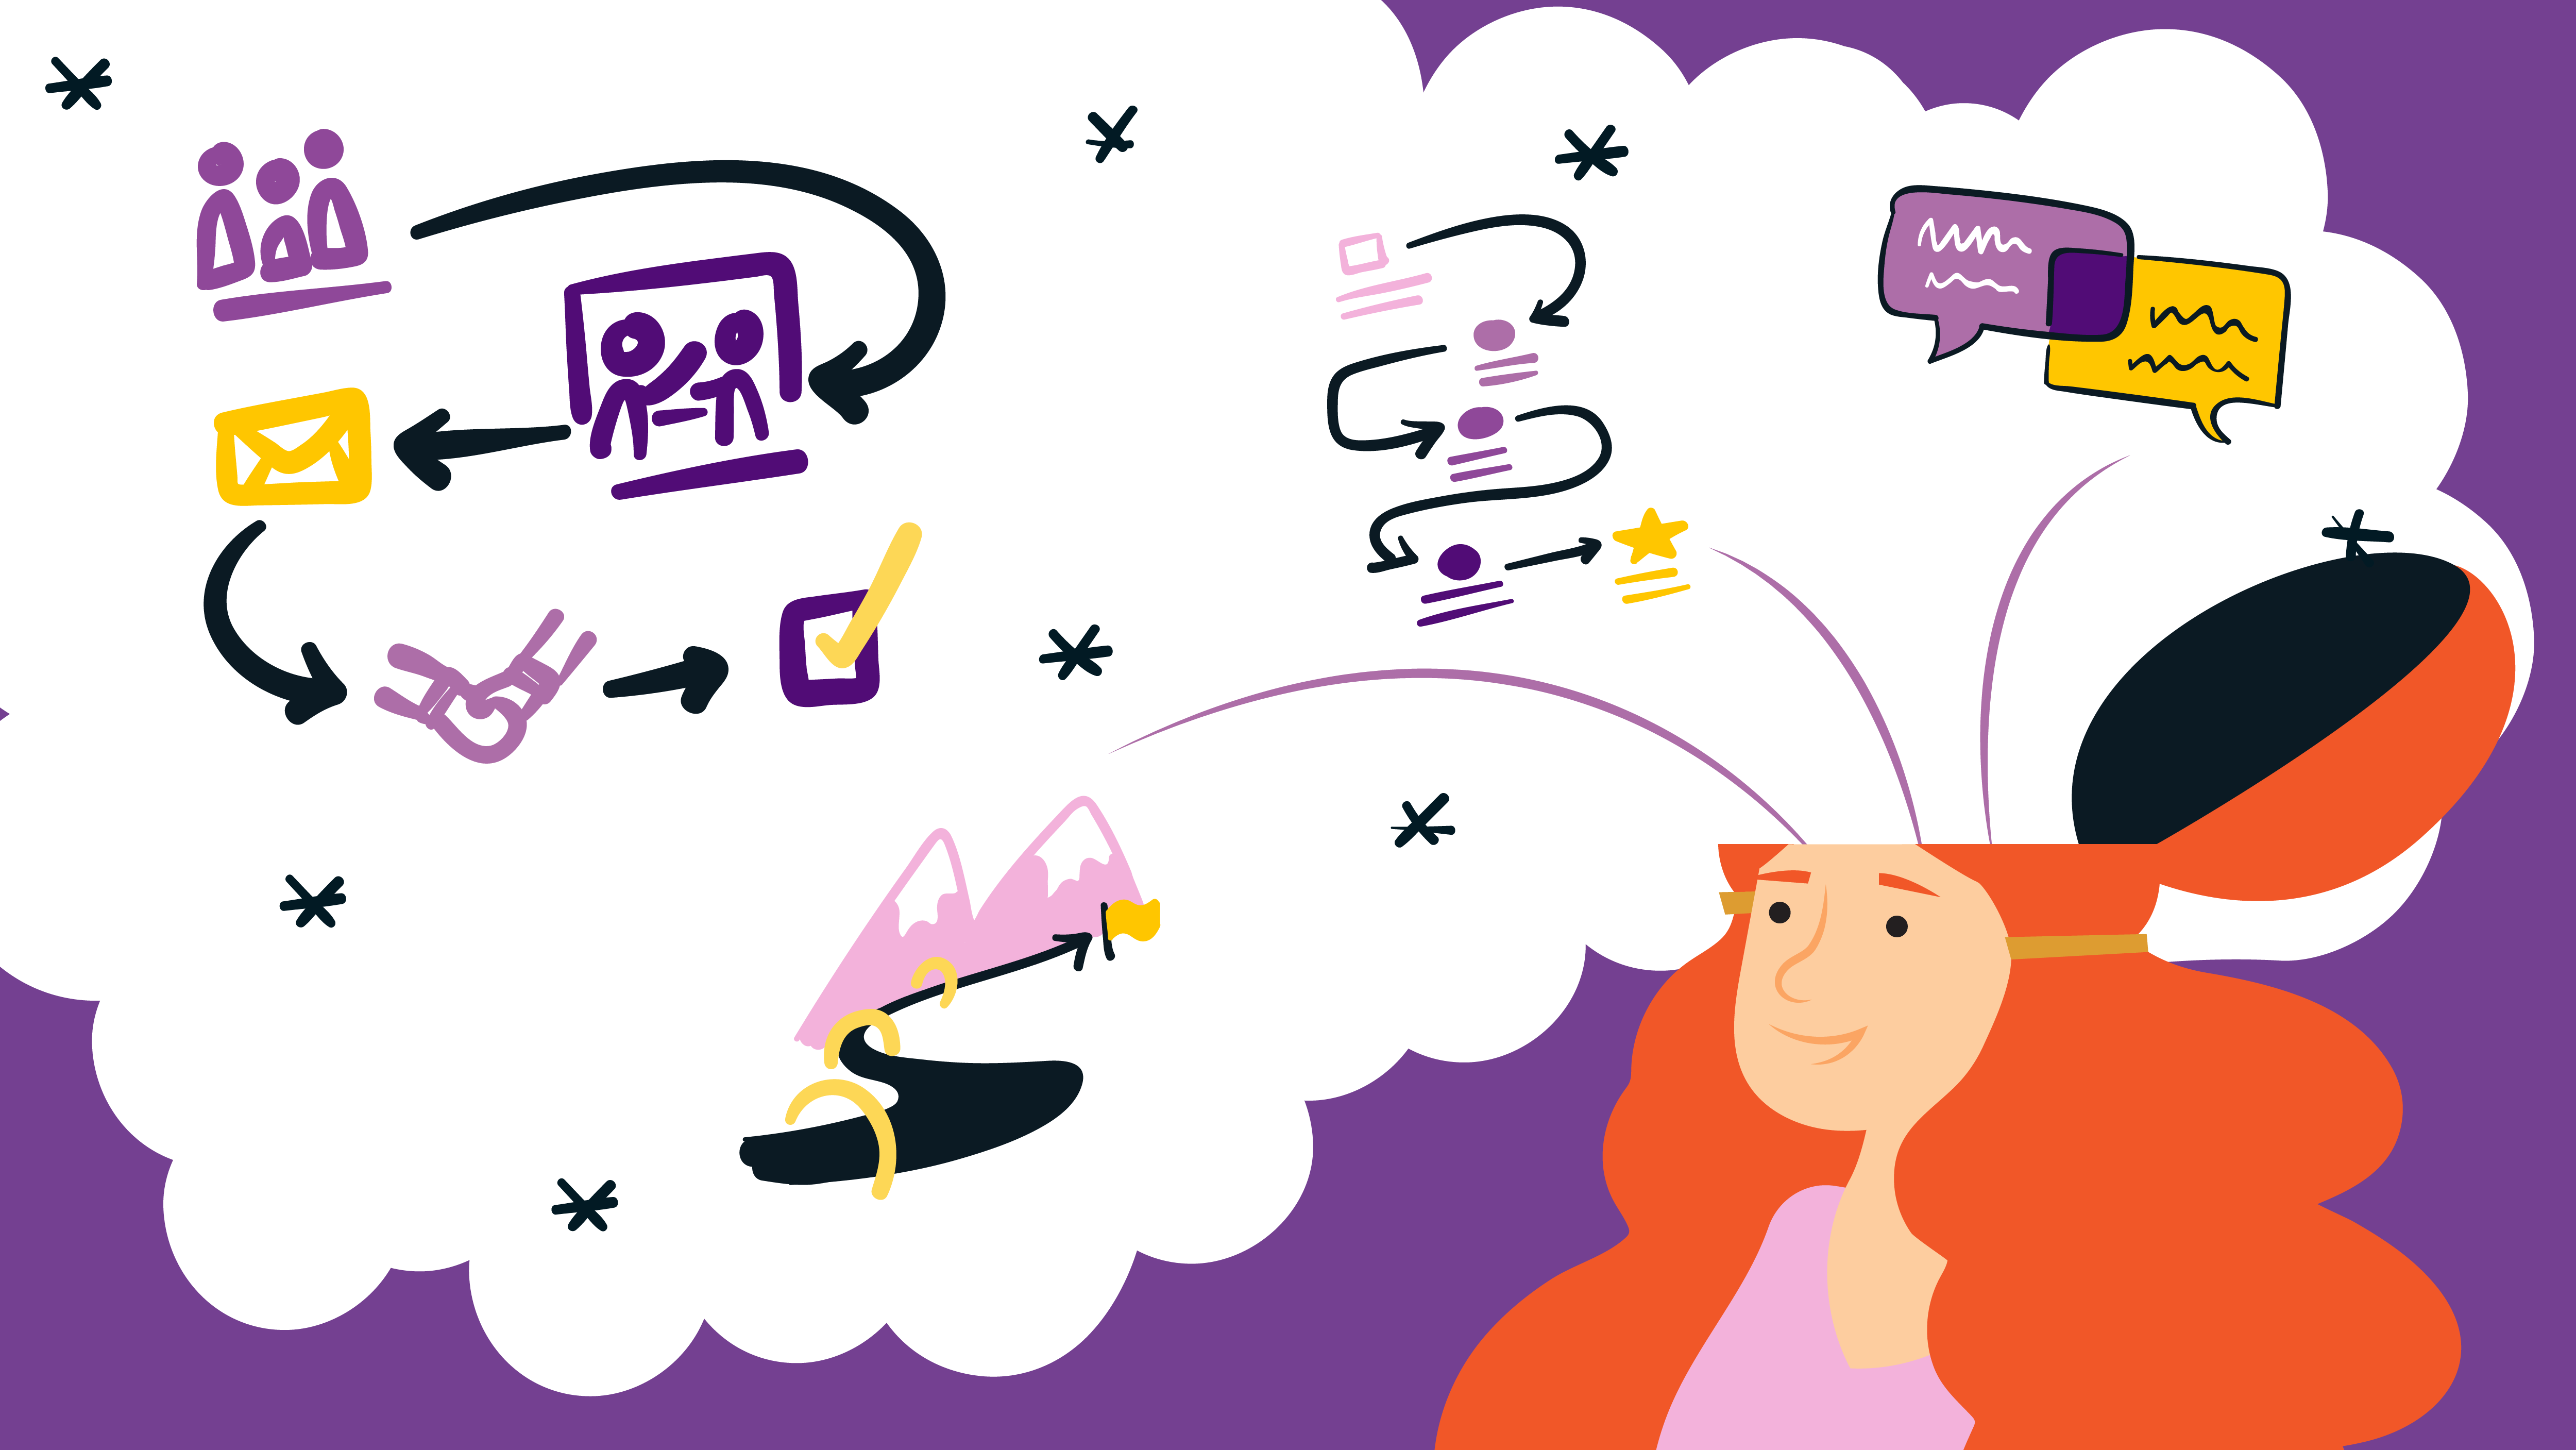 Header image showing an excited, red-haired woman with her head hinged open, thinking of business concepts against a purple background